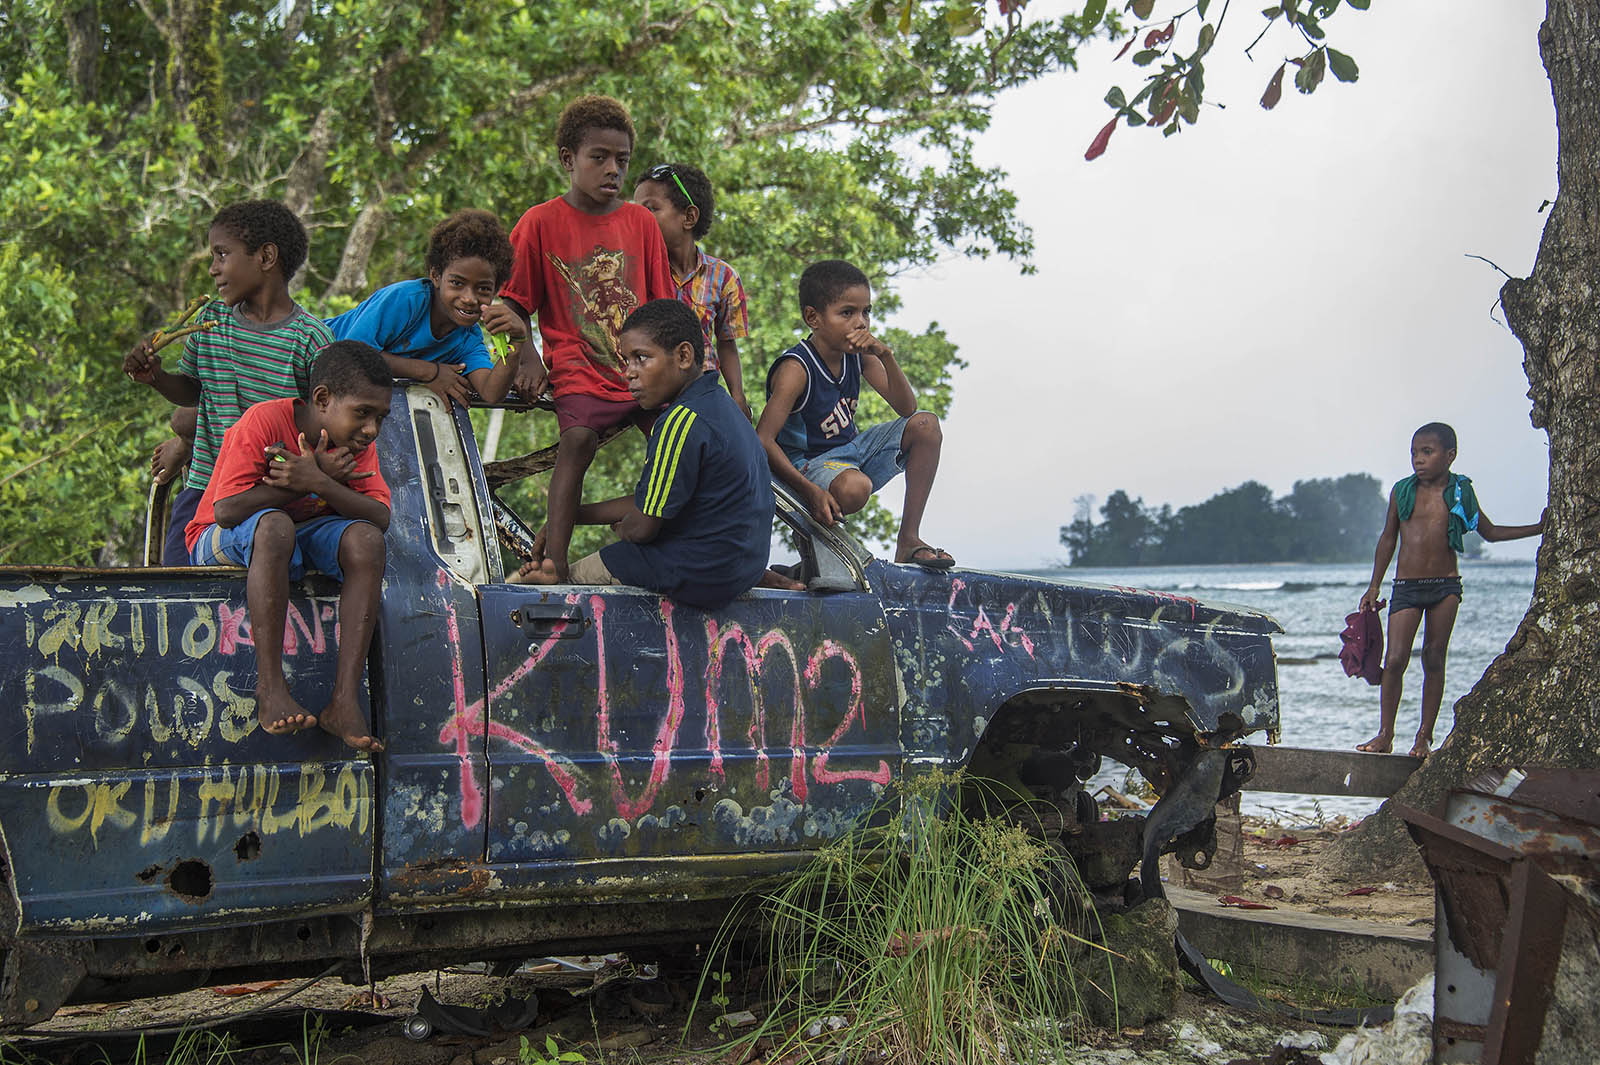 Children play on an abondoned car at the beach near Lorengau, Manus Island PNG. © Brian Cassey